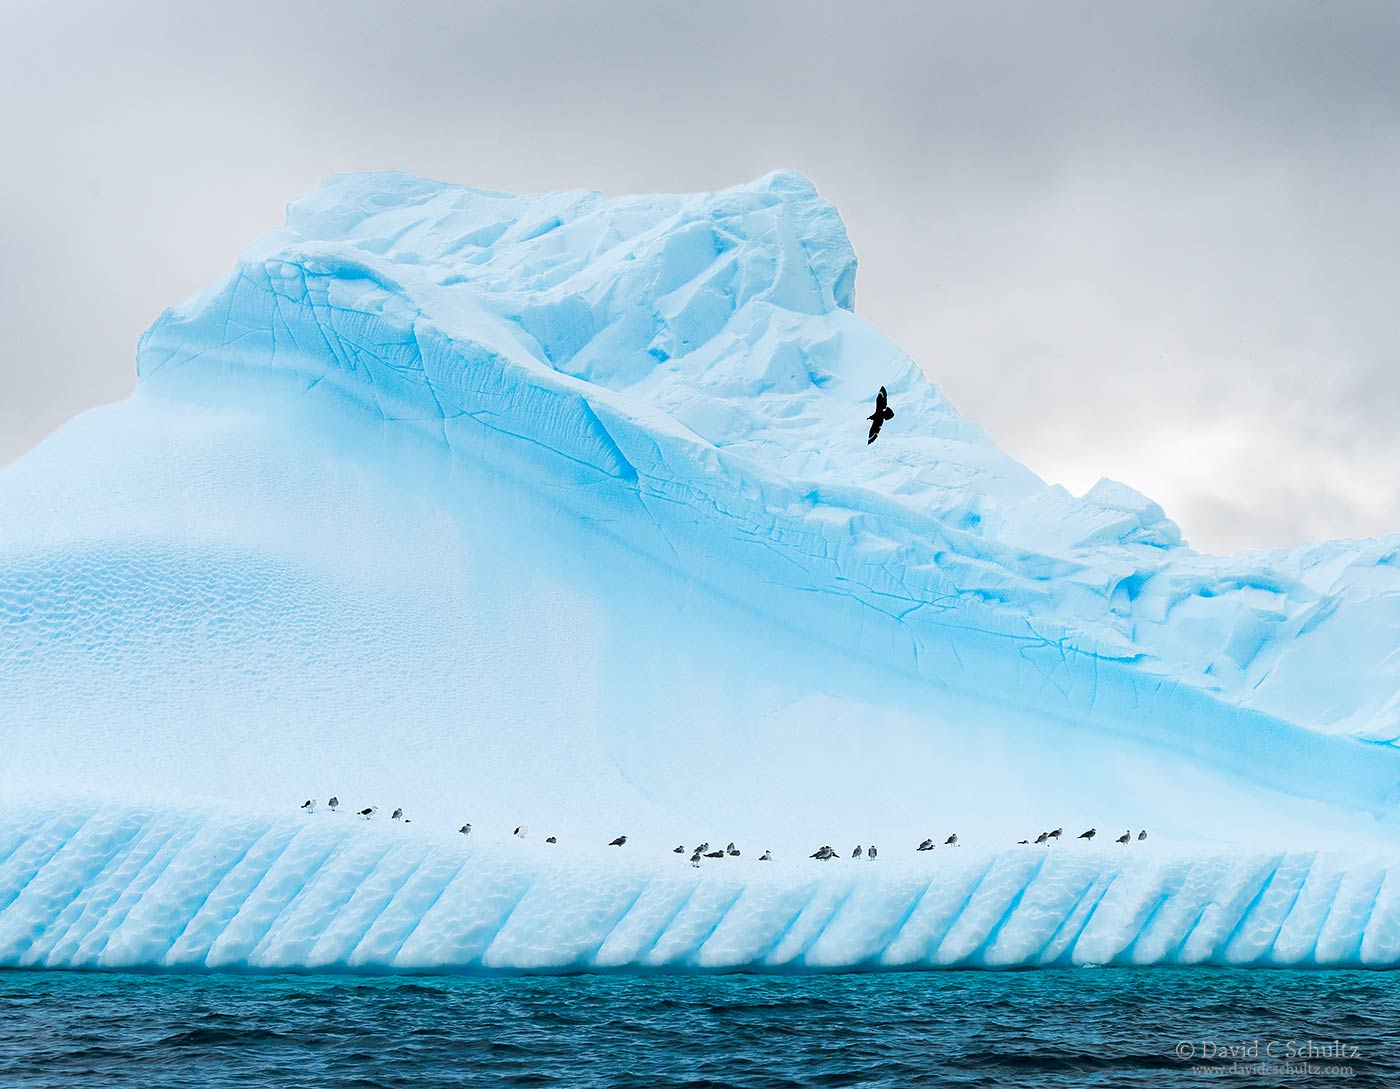 Iceberg and birds in Antarctica - Image #167-5209